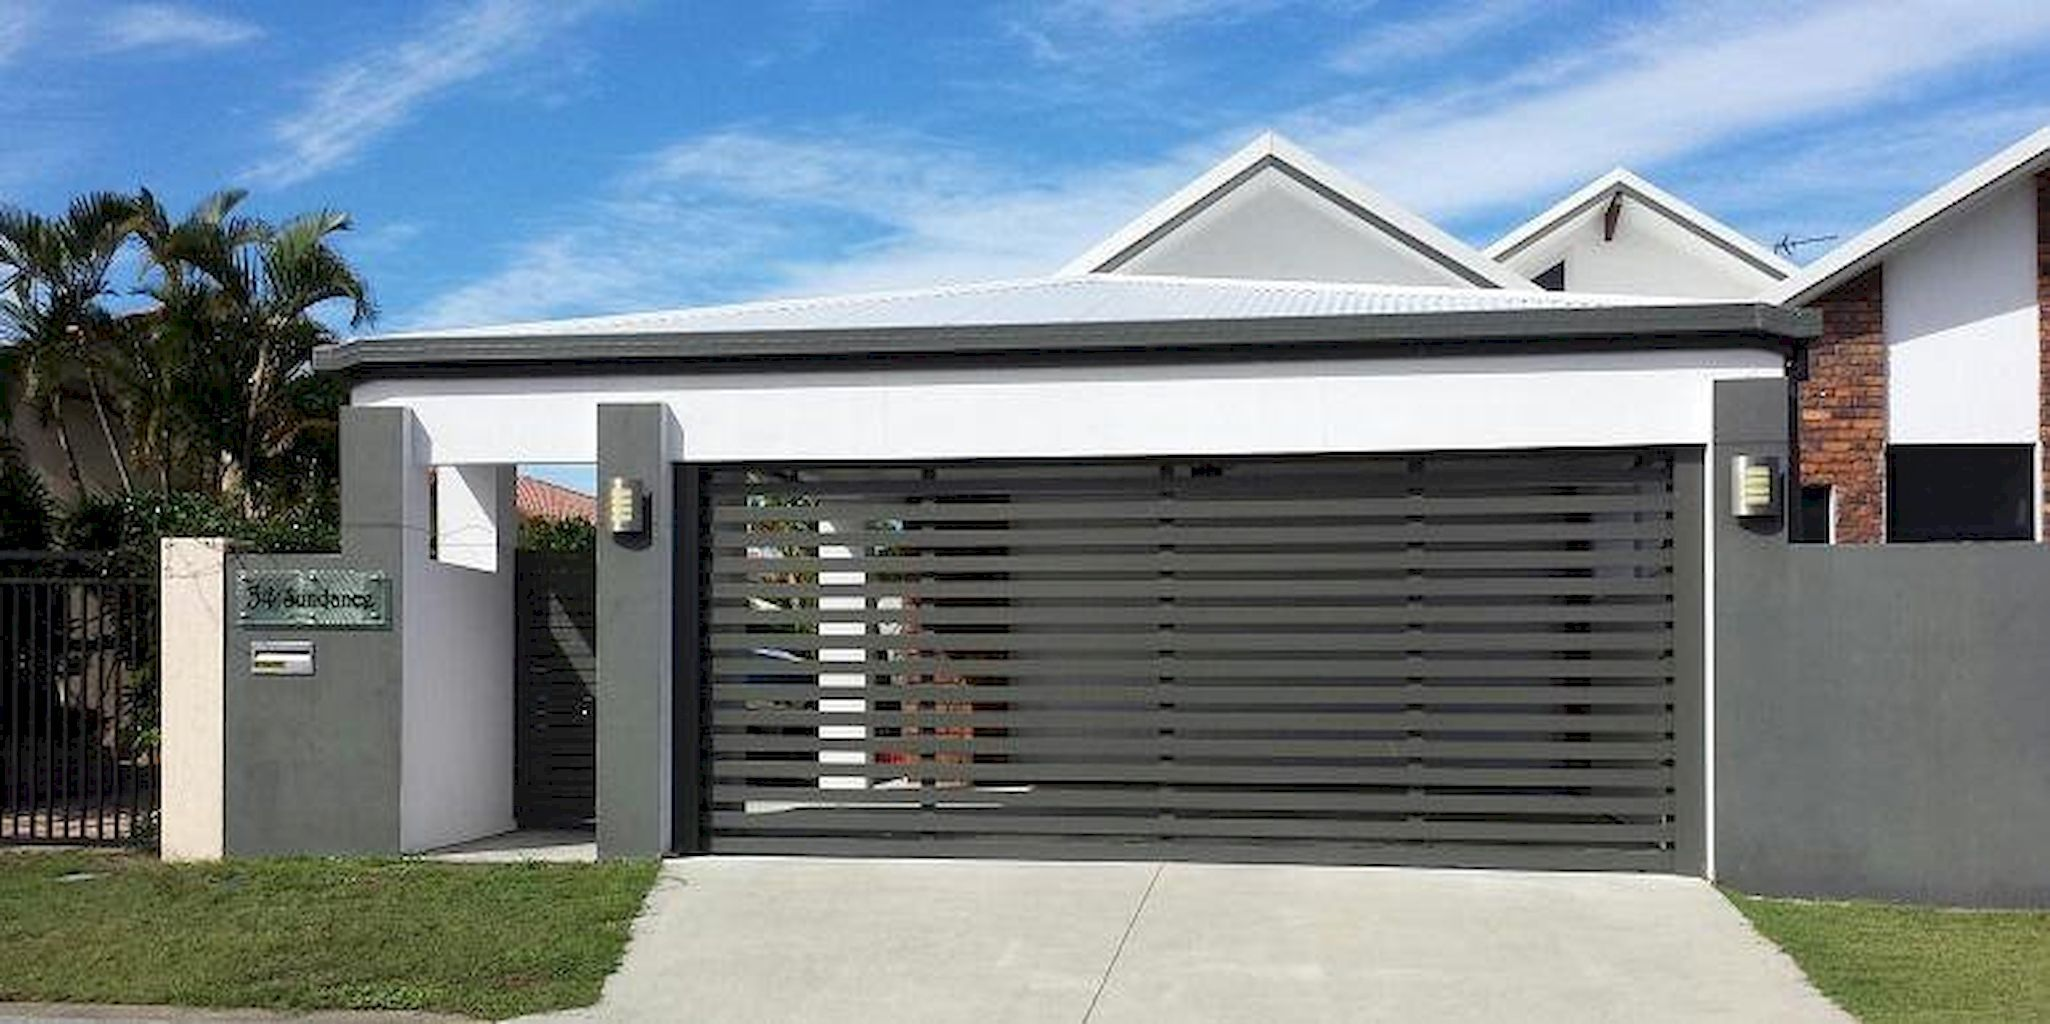 55 adorable modern carports garage designs ideas modern for Carport with attached workshop